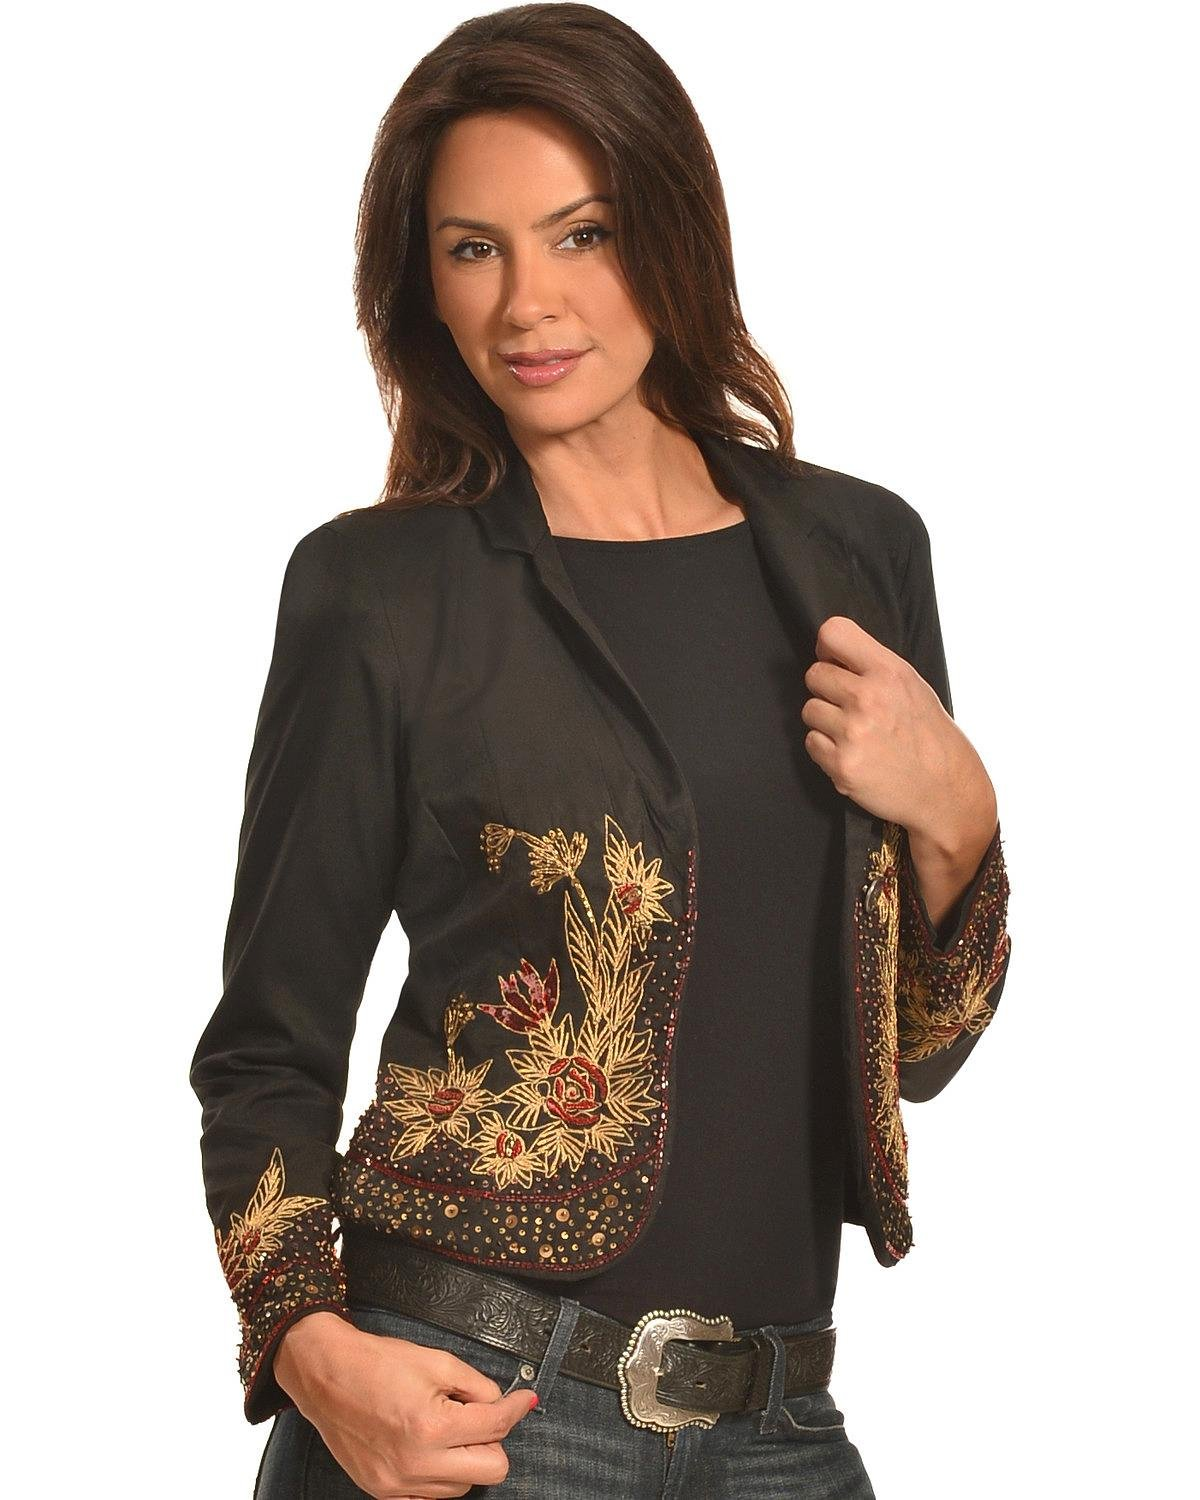 Pink Cattlelac Women's Beaded And Embroidered Blazer Black Medium by Pink Cattlelac